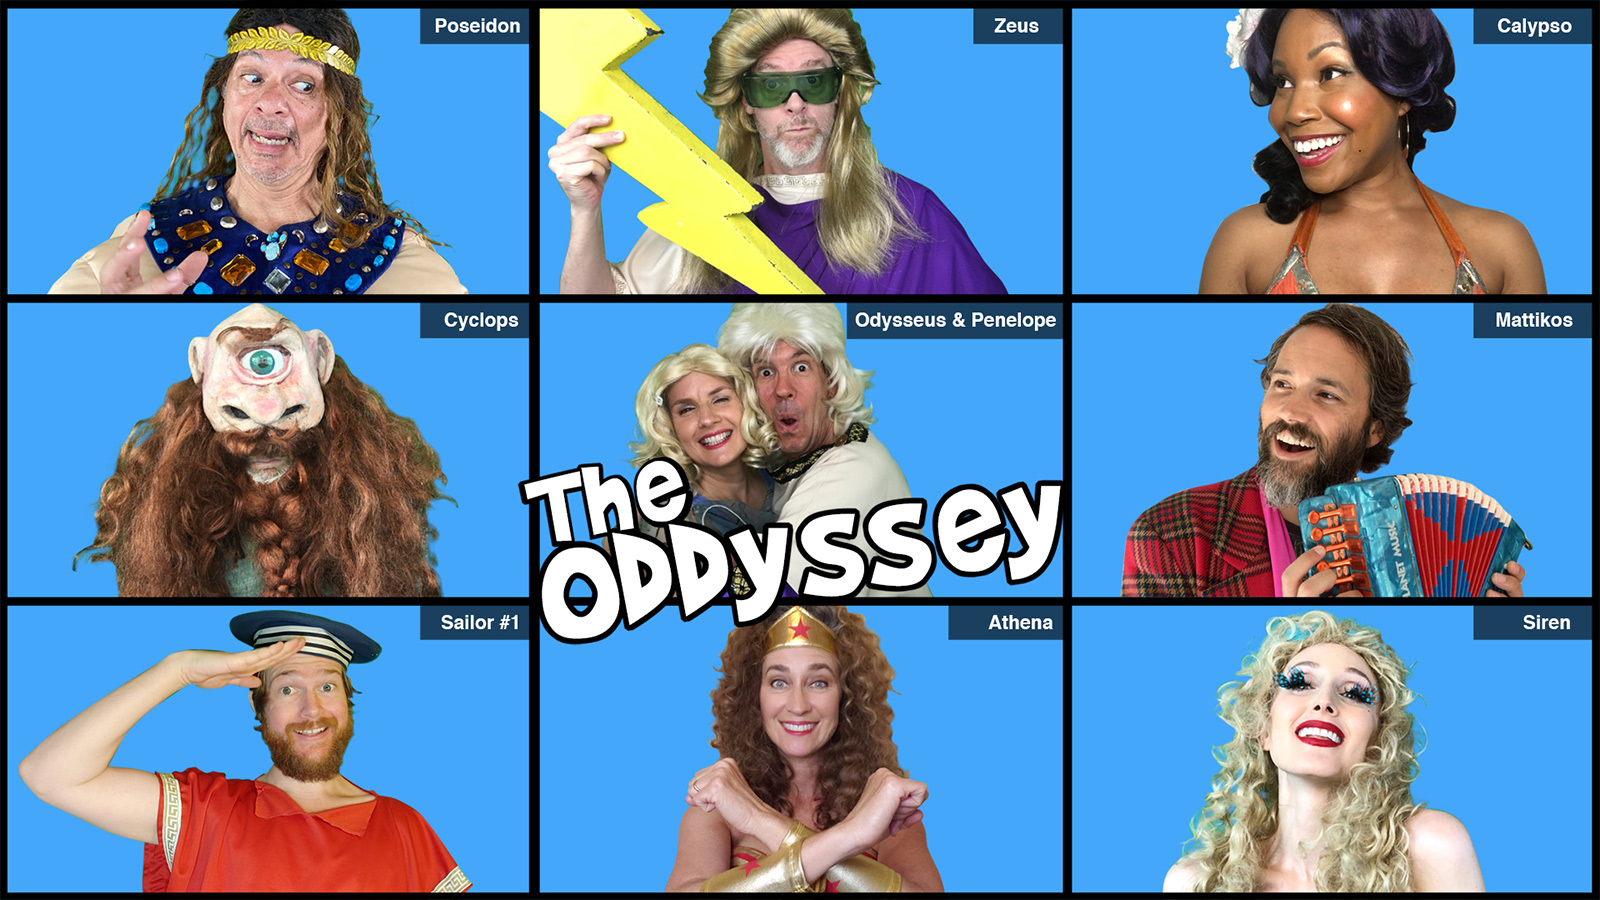 Brady Bunch style graphic showing nine cast members of The ODDyssey in a 3x3 grid on a blue background